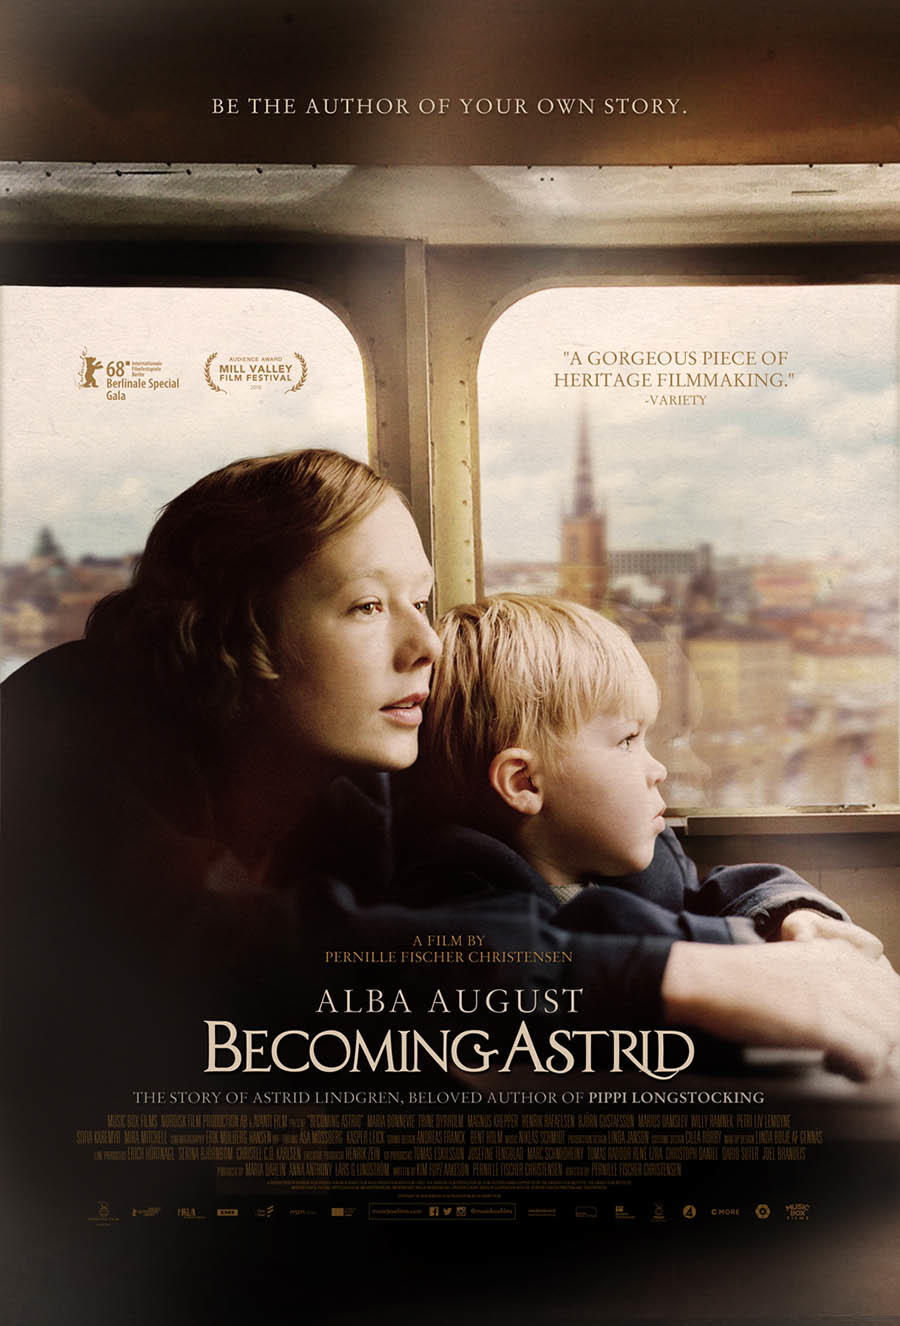 Becoming Astrid poster art